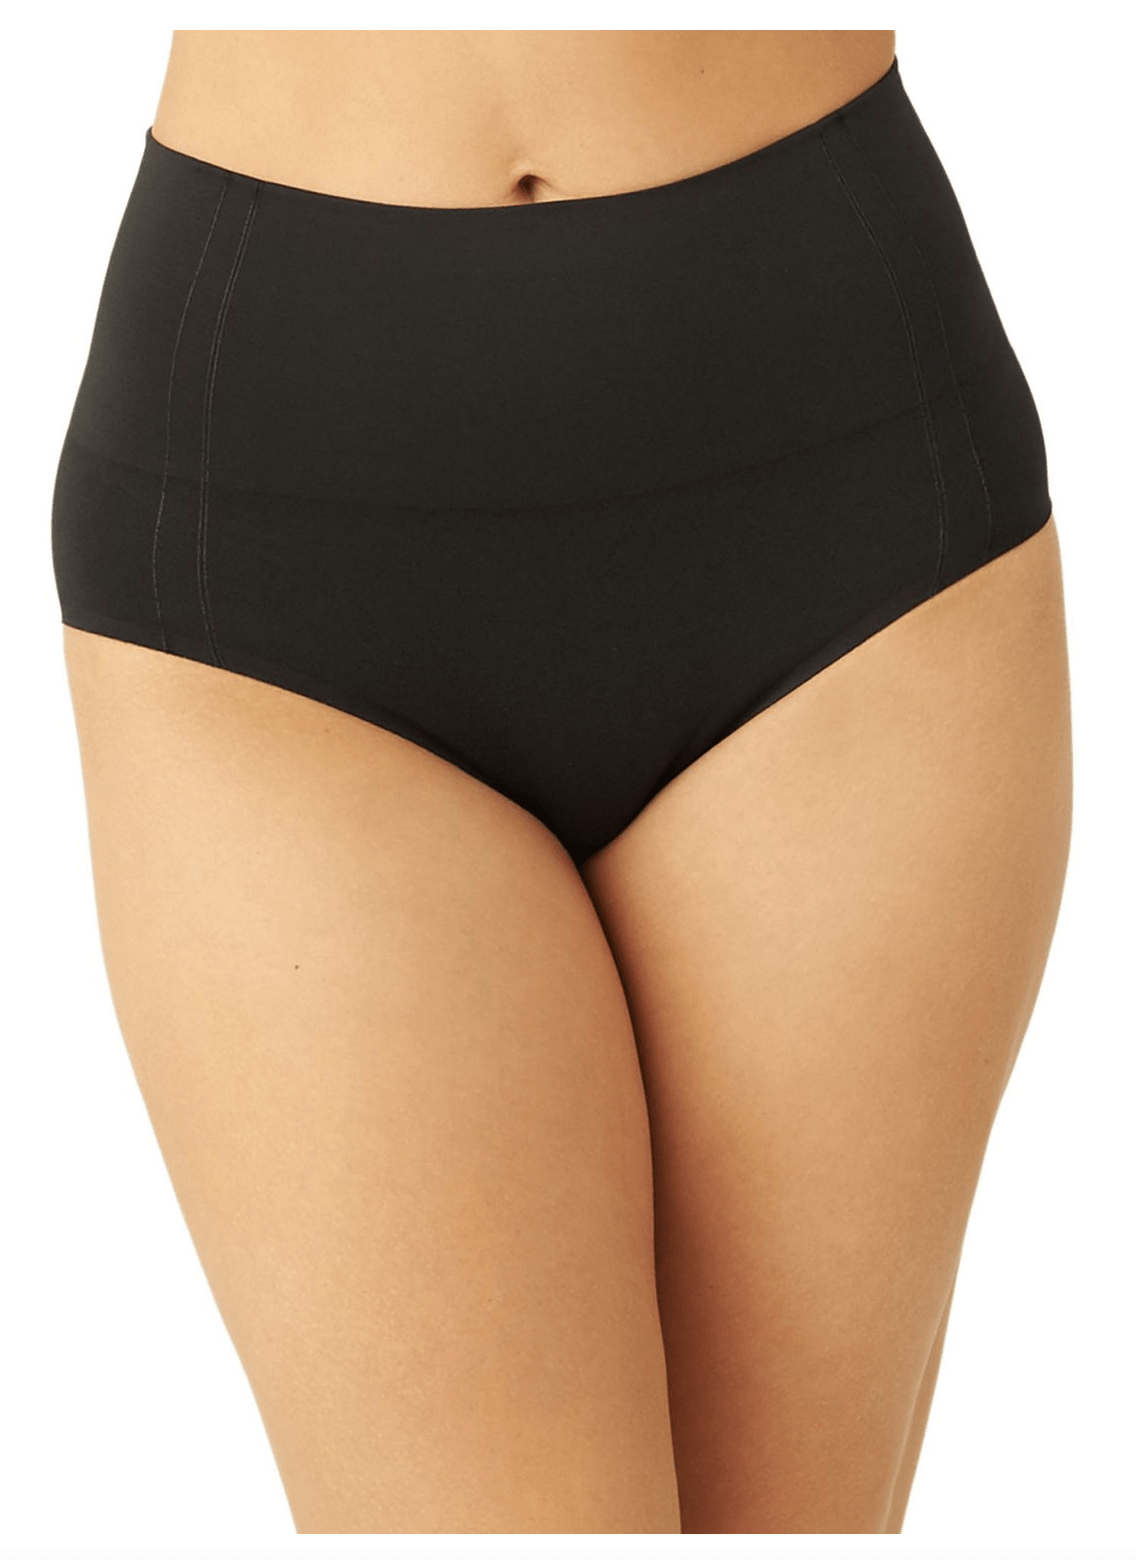 Wacoal Smooth Series Shaping Brief 809360 Panties Black / S Wacoal